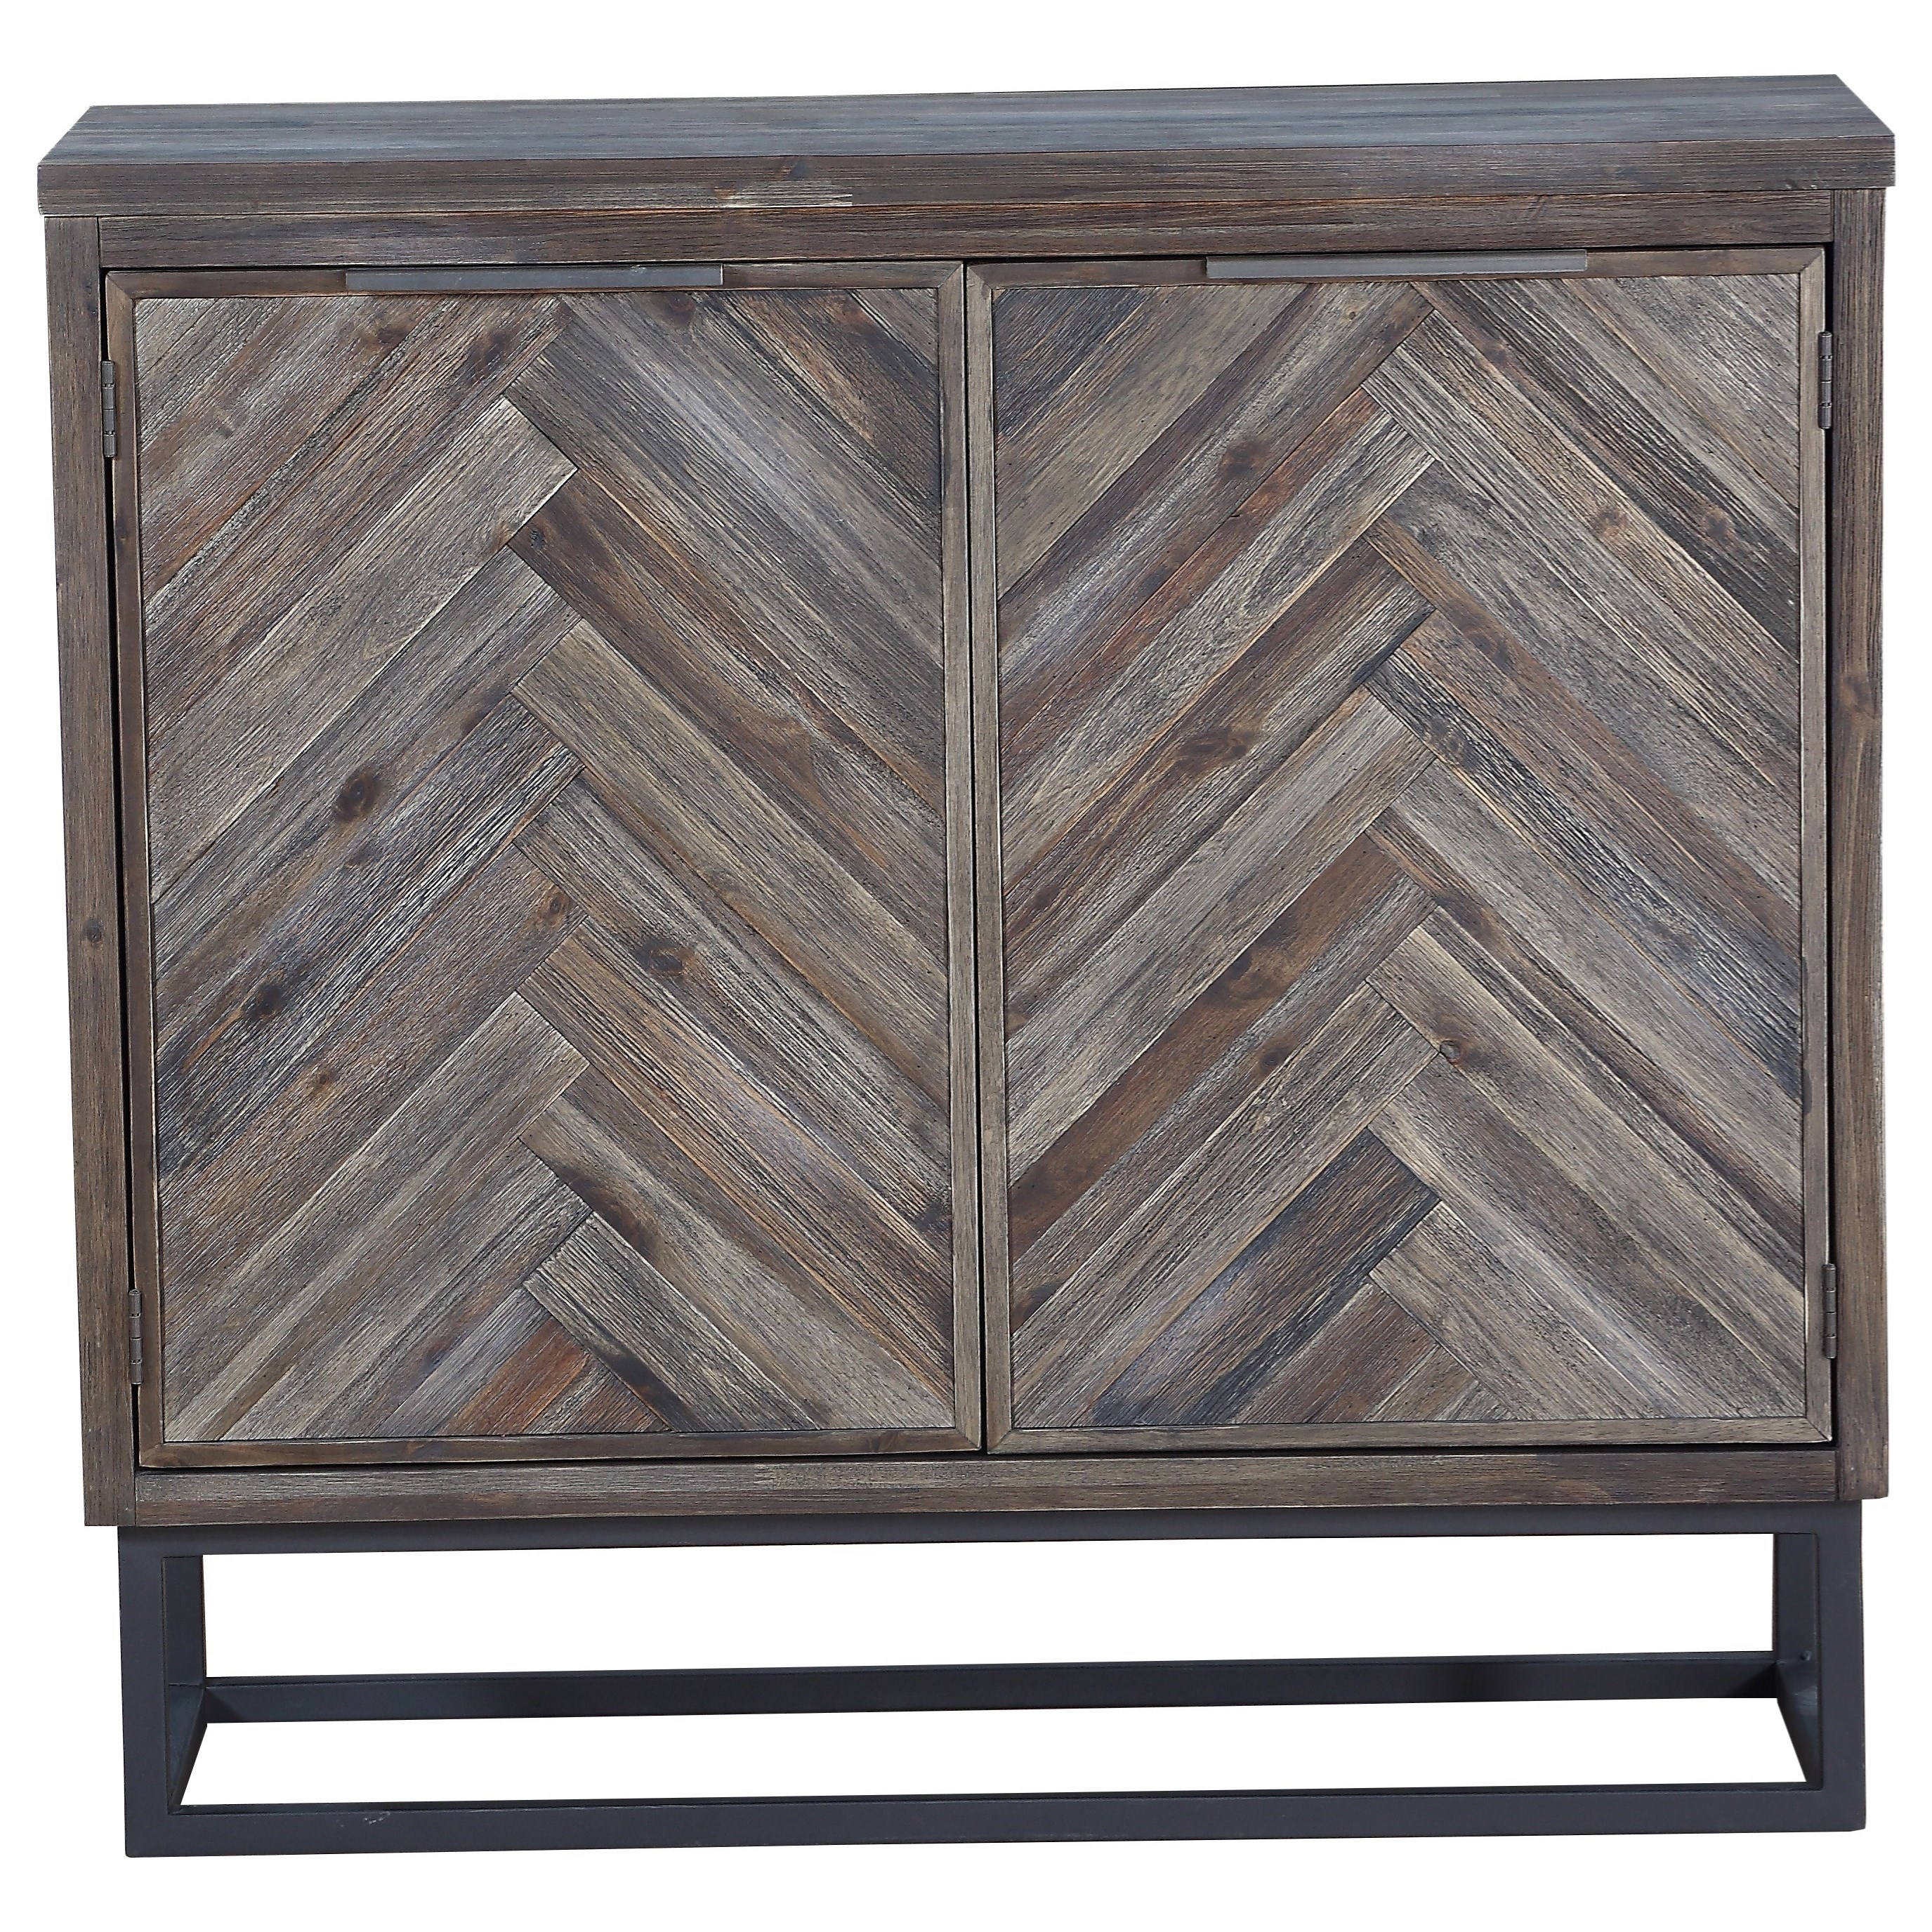 Aspen Court Two Door Cabinet by Coast to Coast Imports at Value City Furniture